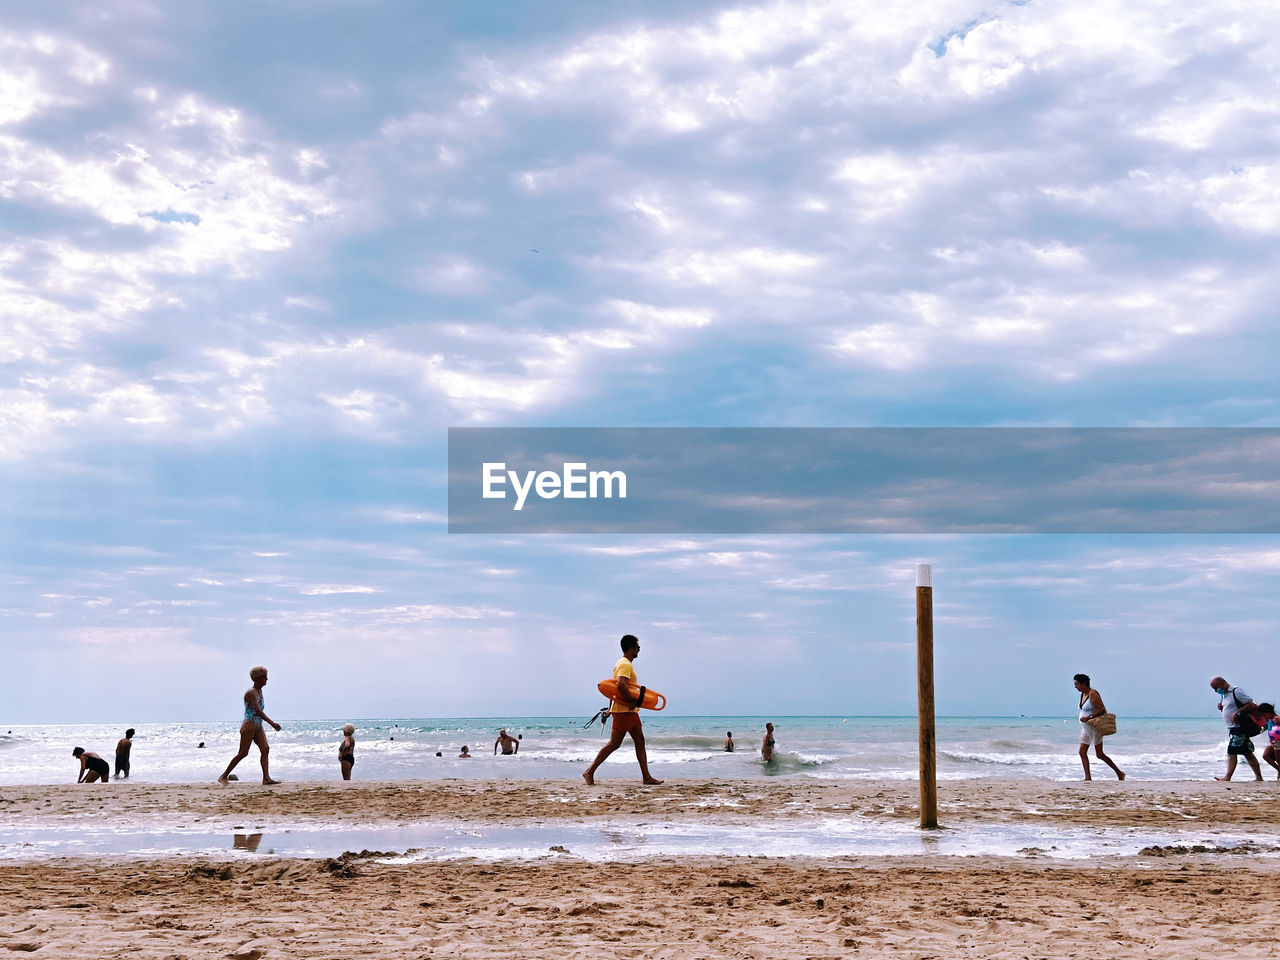 PEOPLE PLAYING ON BEACH AGAINST SEA